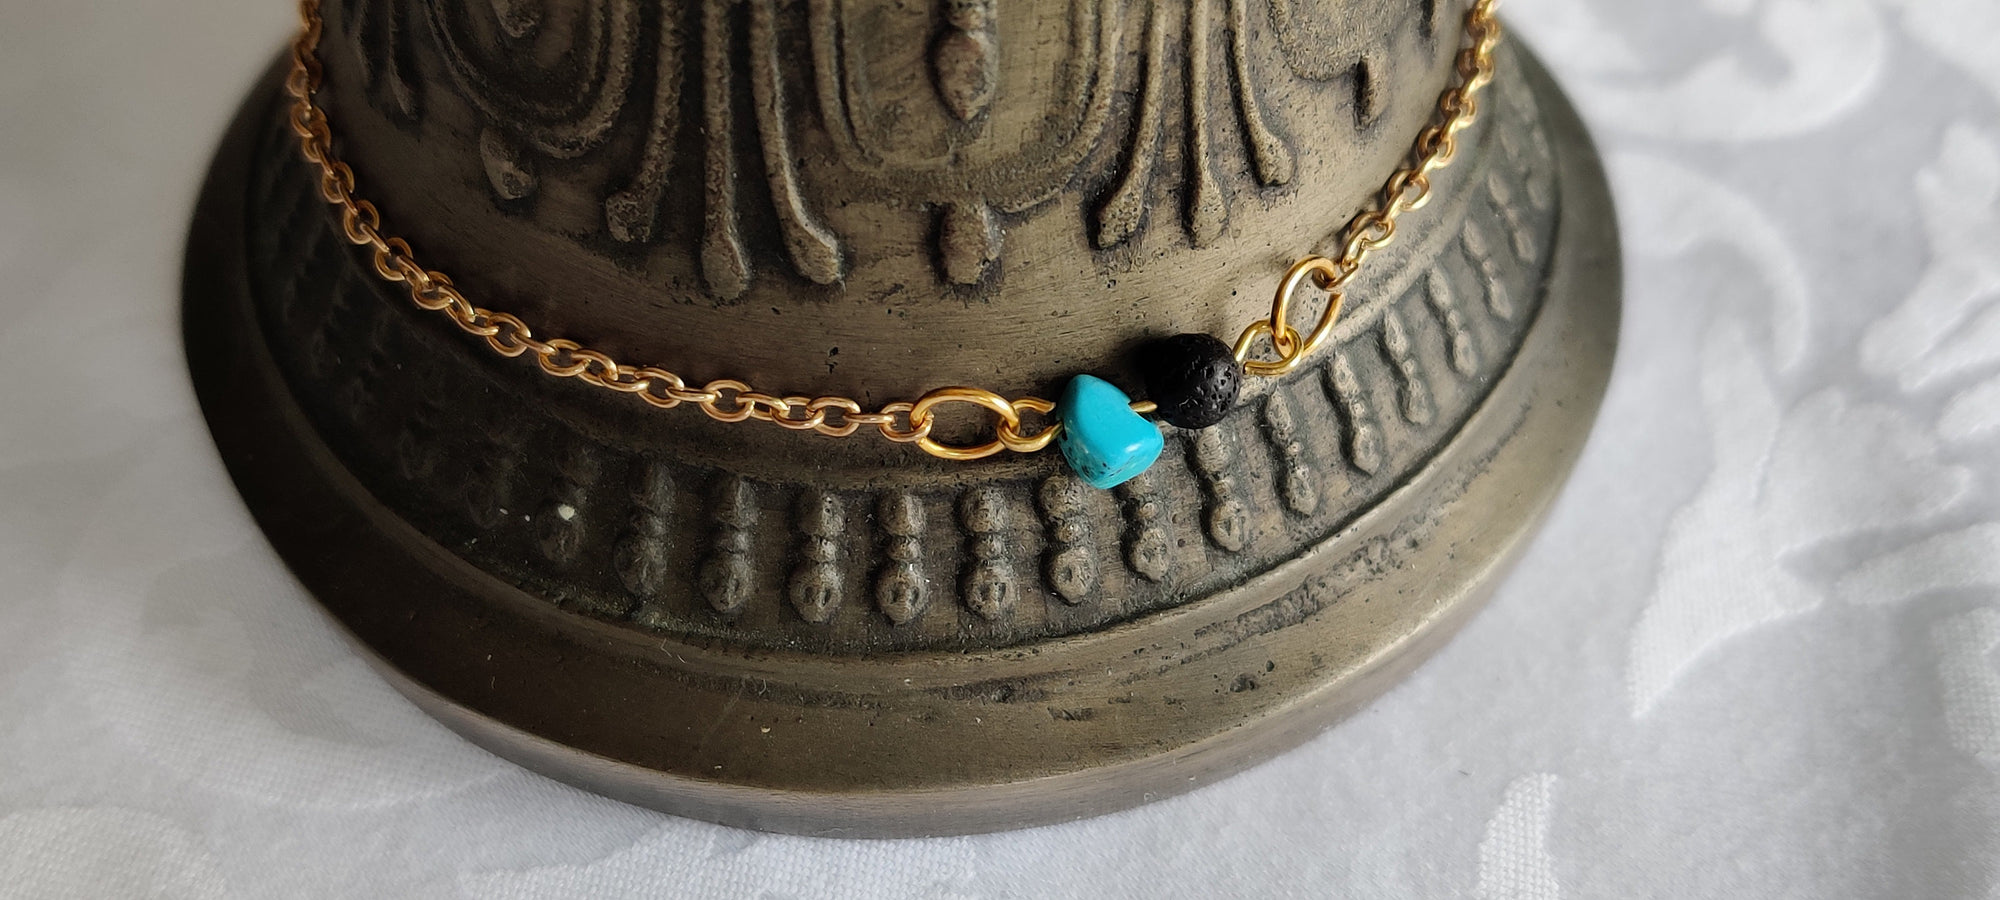 Healing crystals, Gift for her, Minimalist,  Bracelet , Lava Bead, Turquoise, Gold plated chain, Aromatherapy